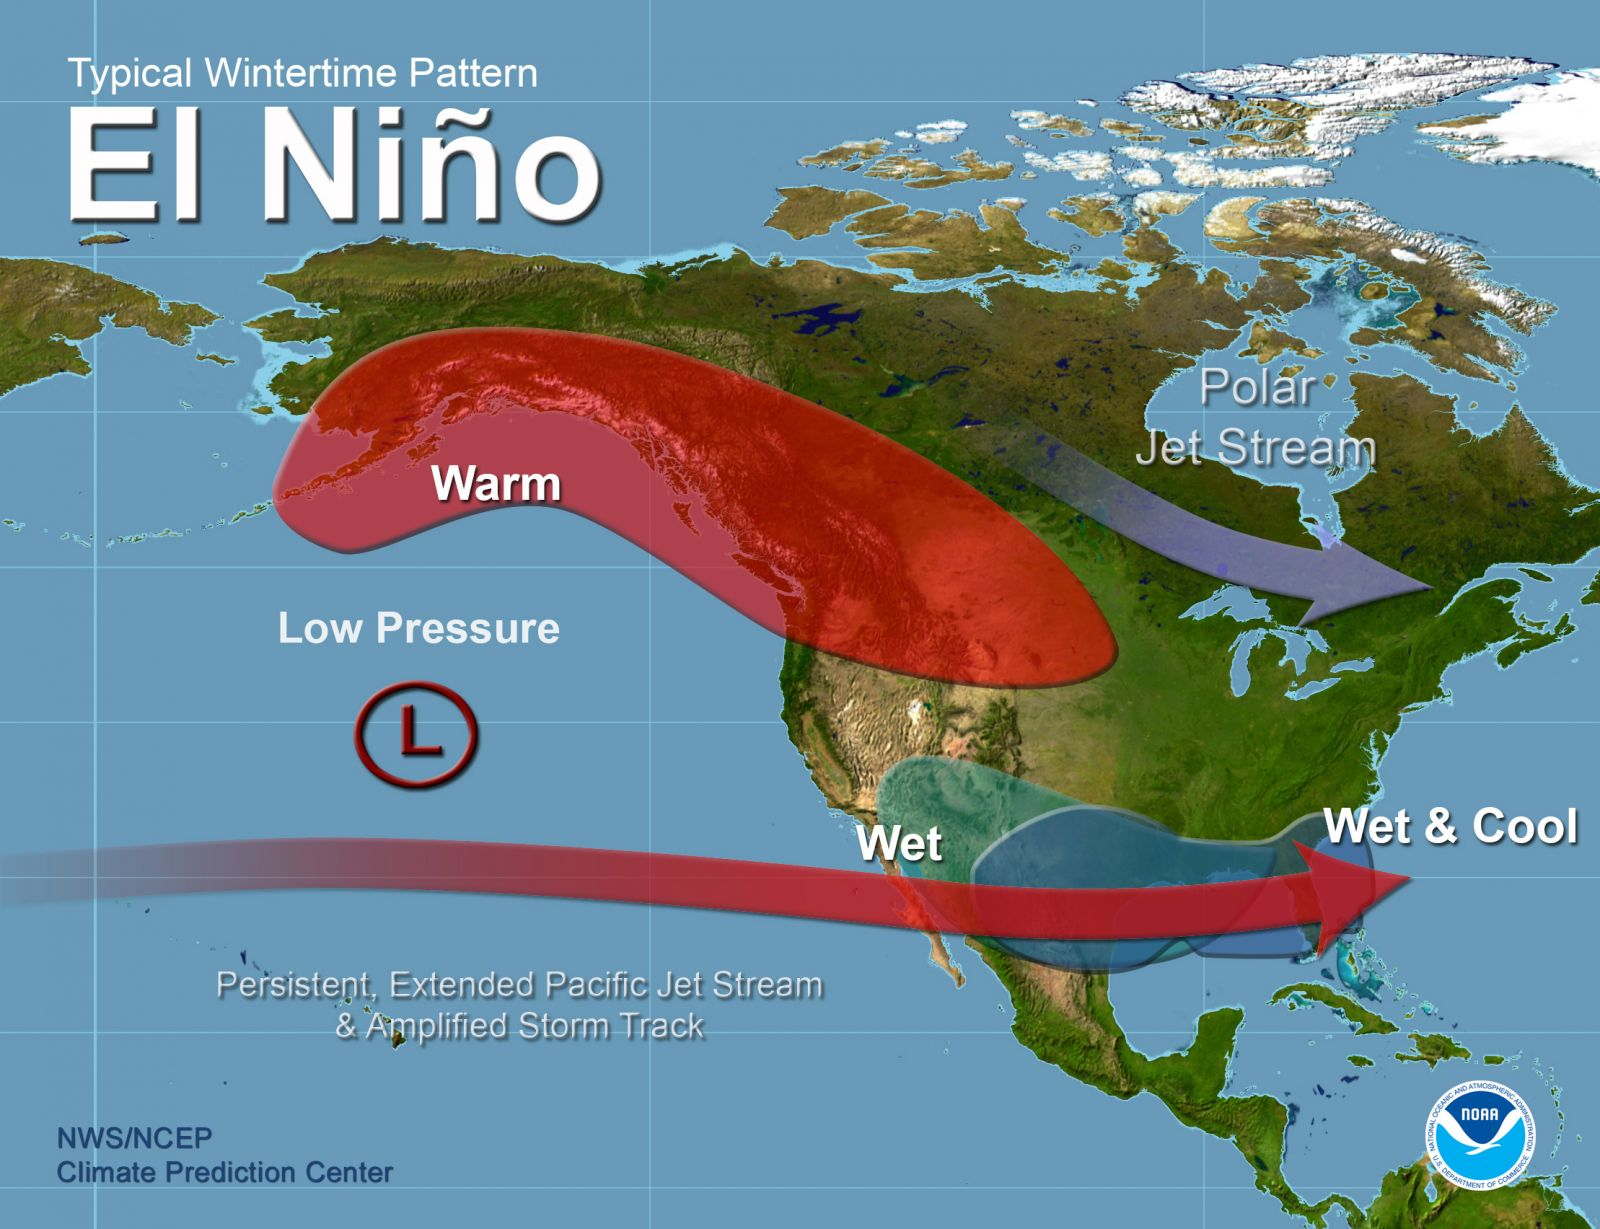 el nino – what it means for snow during winter 2018-2019 | opensnow